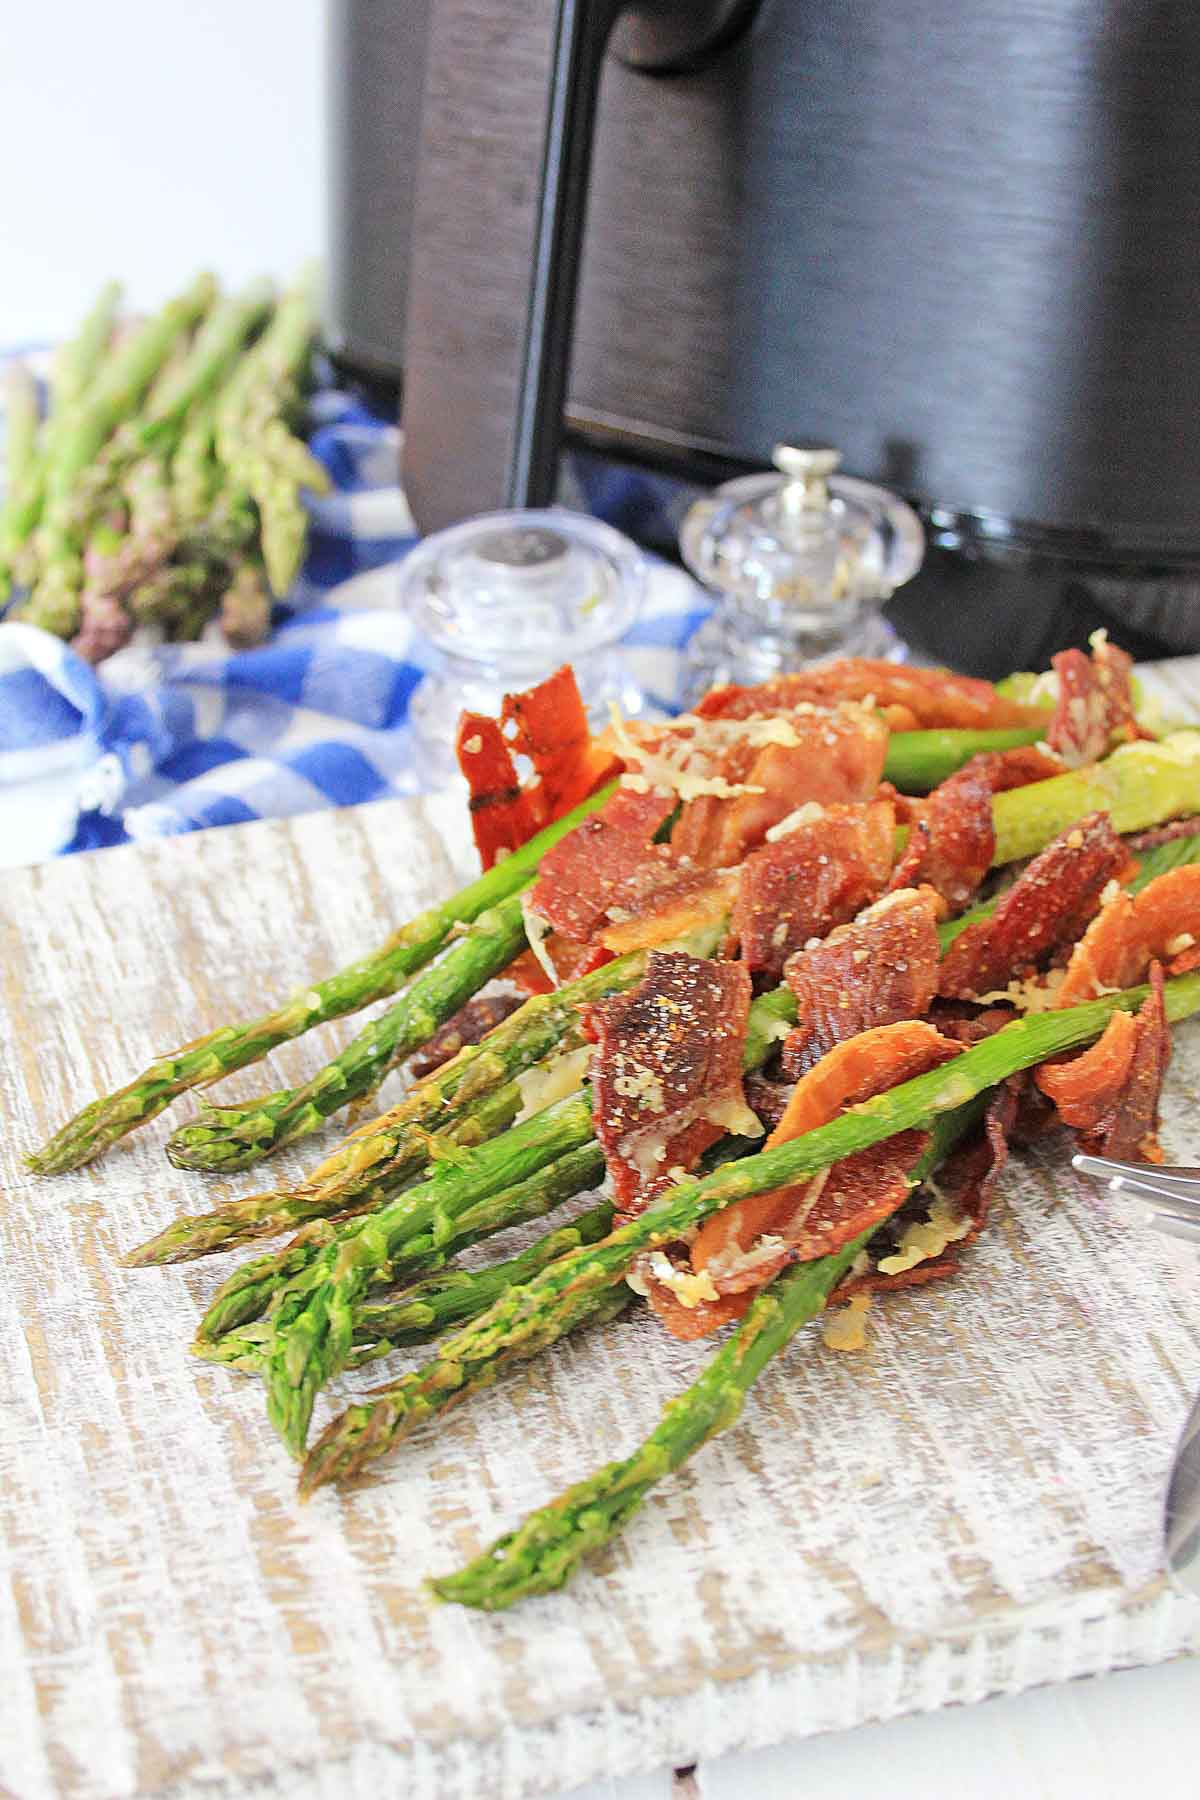 bacon wrapped asparagus on a serving tray in front of the air fryer.